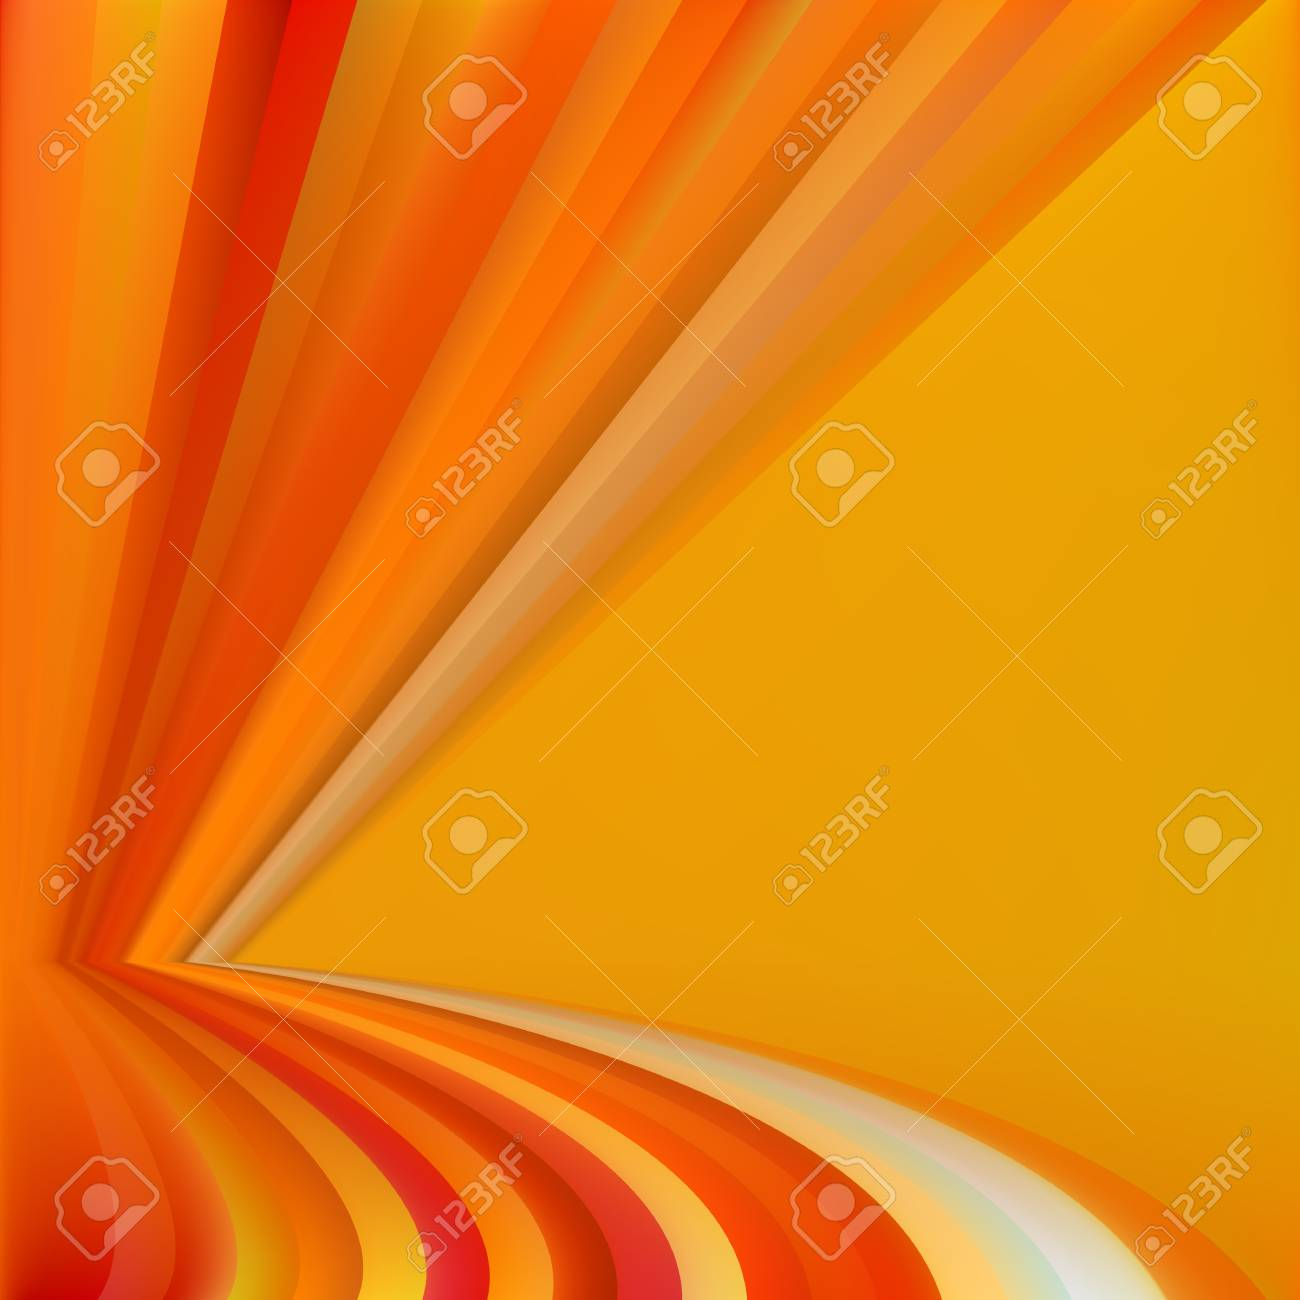 Colorful Autumn Abstract Background - Vector Illustration With Gradient Mash Stock Vector - 22606682